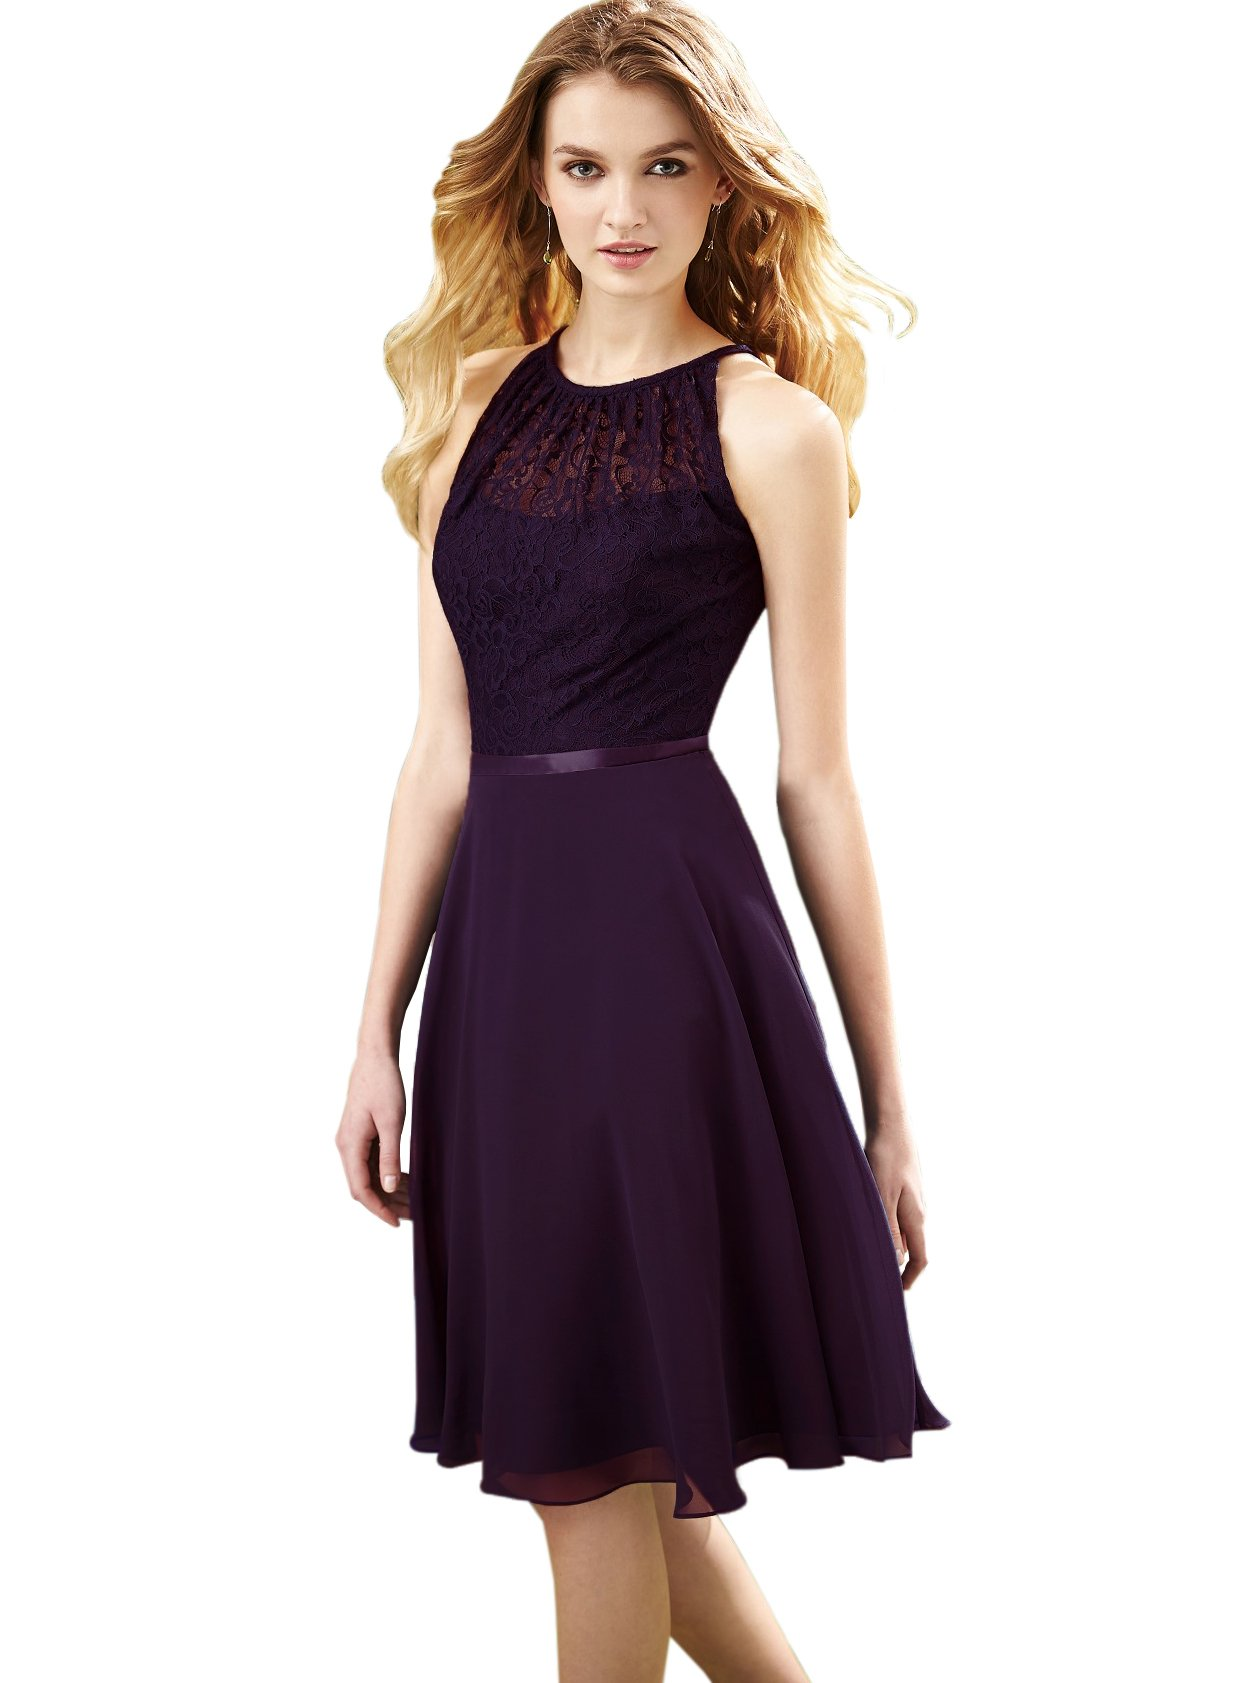 Zhongde Women S Scoop Neck Chiffon Bridesmaid Dress Knee Length Lace Formal Evening Gown Sash Eggplant Size 10